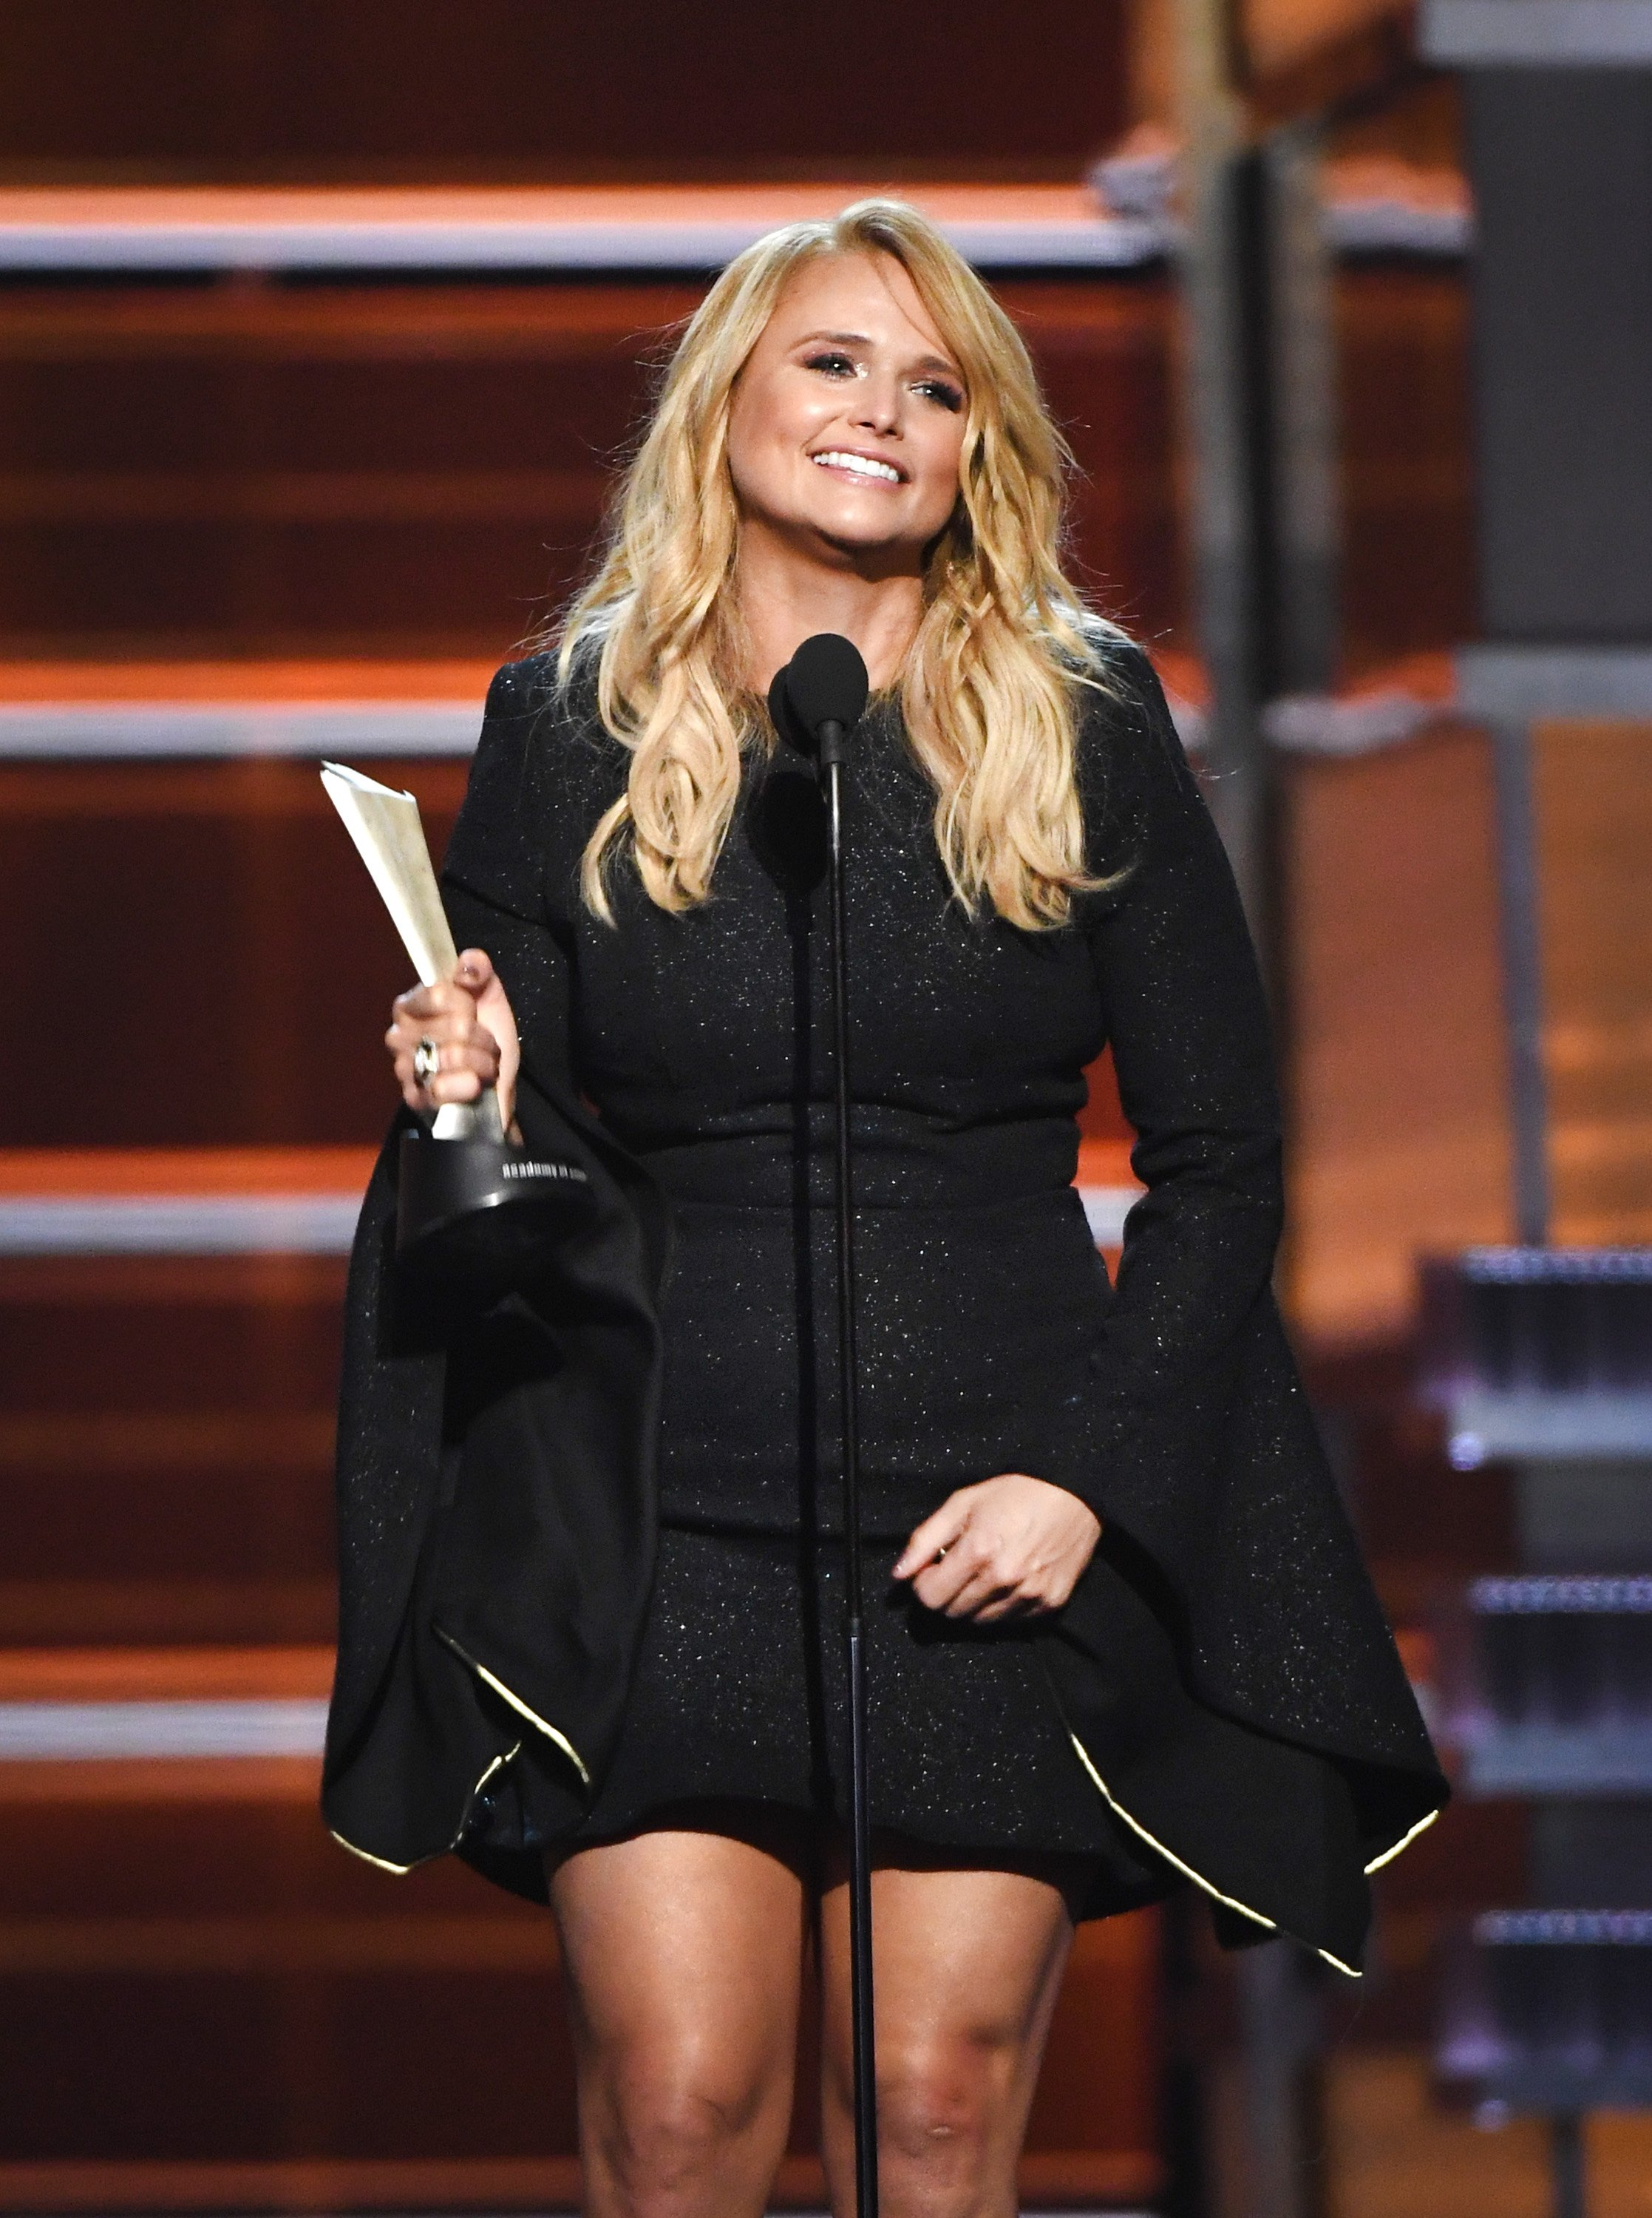 Miranda Lambert onstage at the Academy of Country Music Awards in Las Vegas, Nevada on April 15, 2018 | Photo: Getty Images